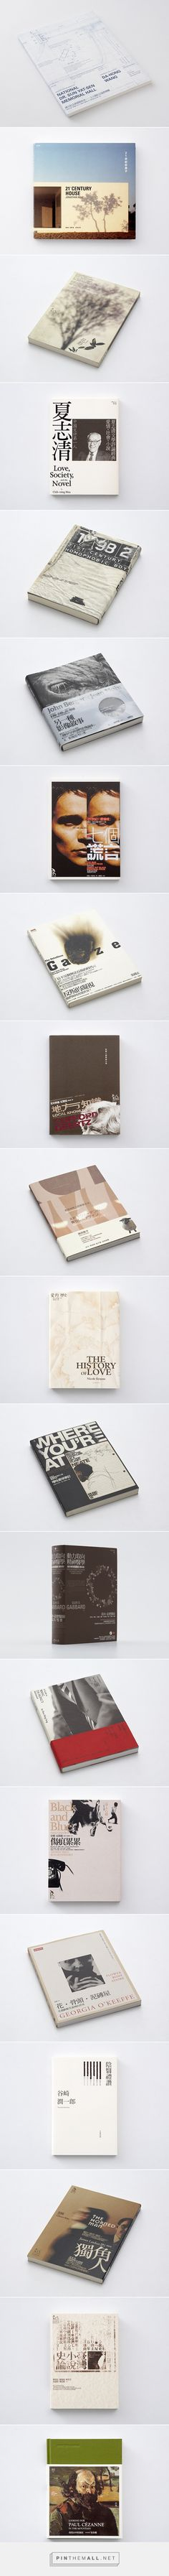 王志弘 - Selection of Book Designs, 2007